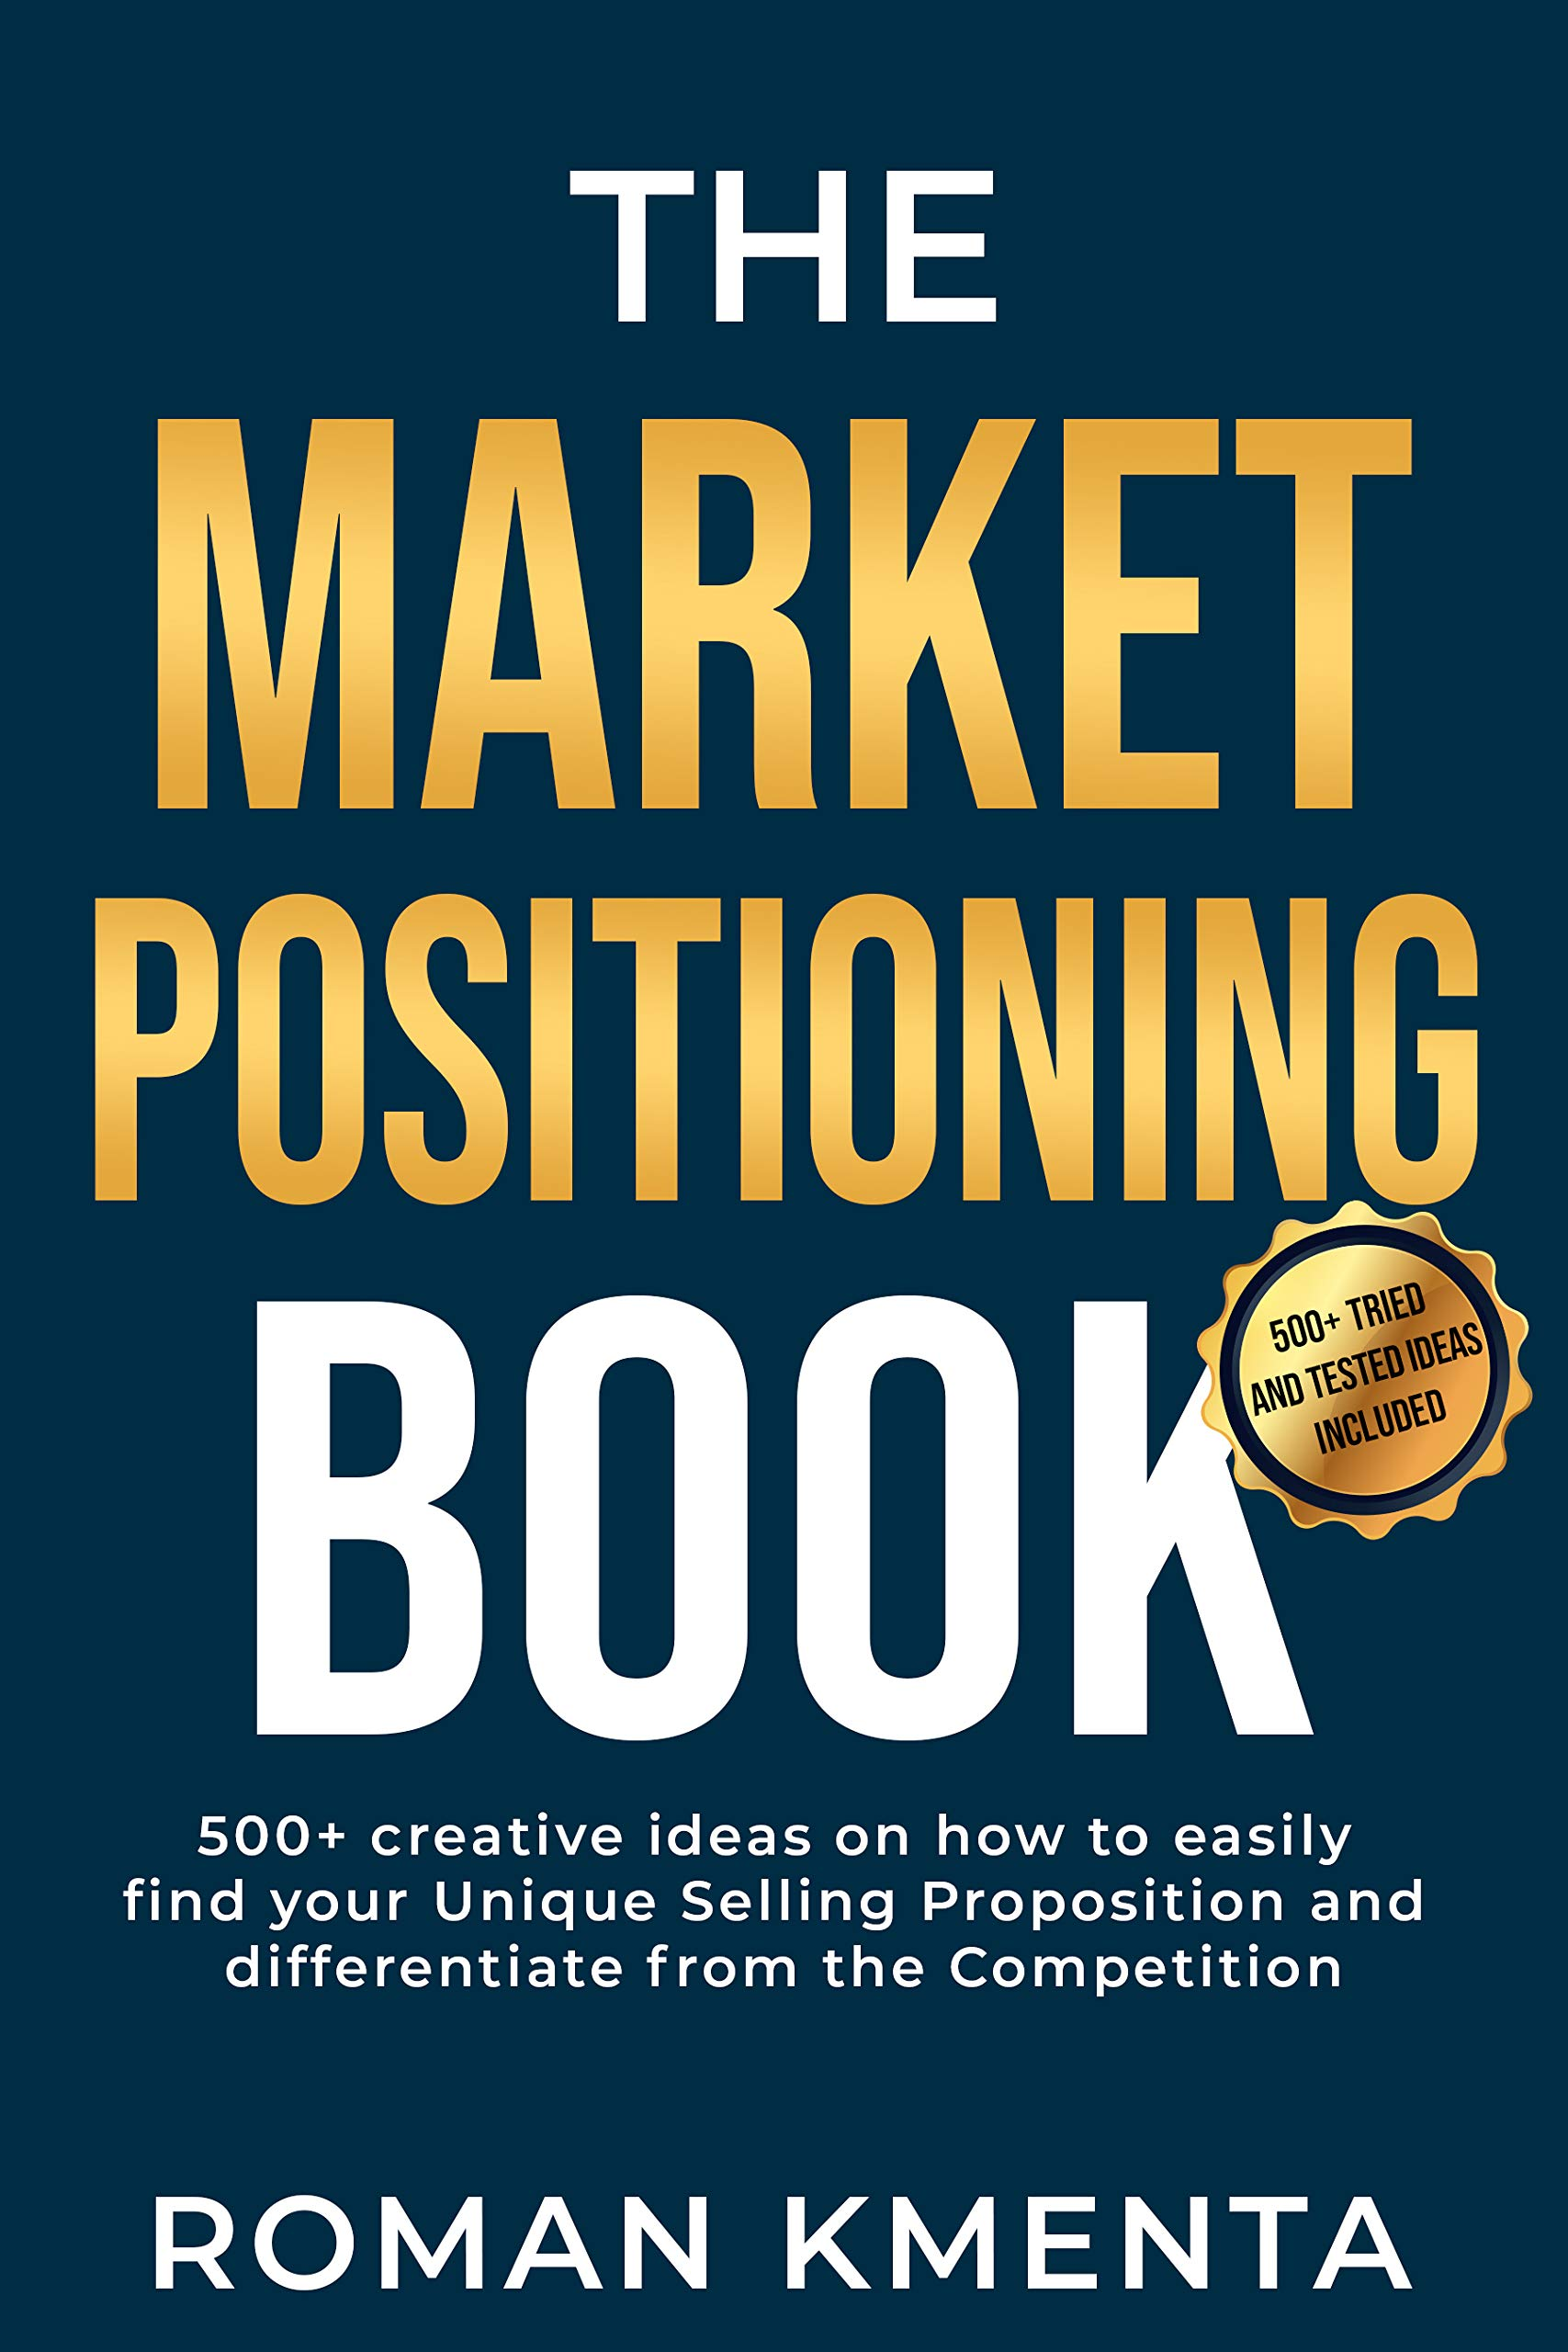 The Market Positioning Book: 500+ creative ideas how to easily find your Unique Selling Proposition and clearly differentiate from Competition